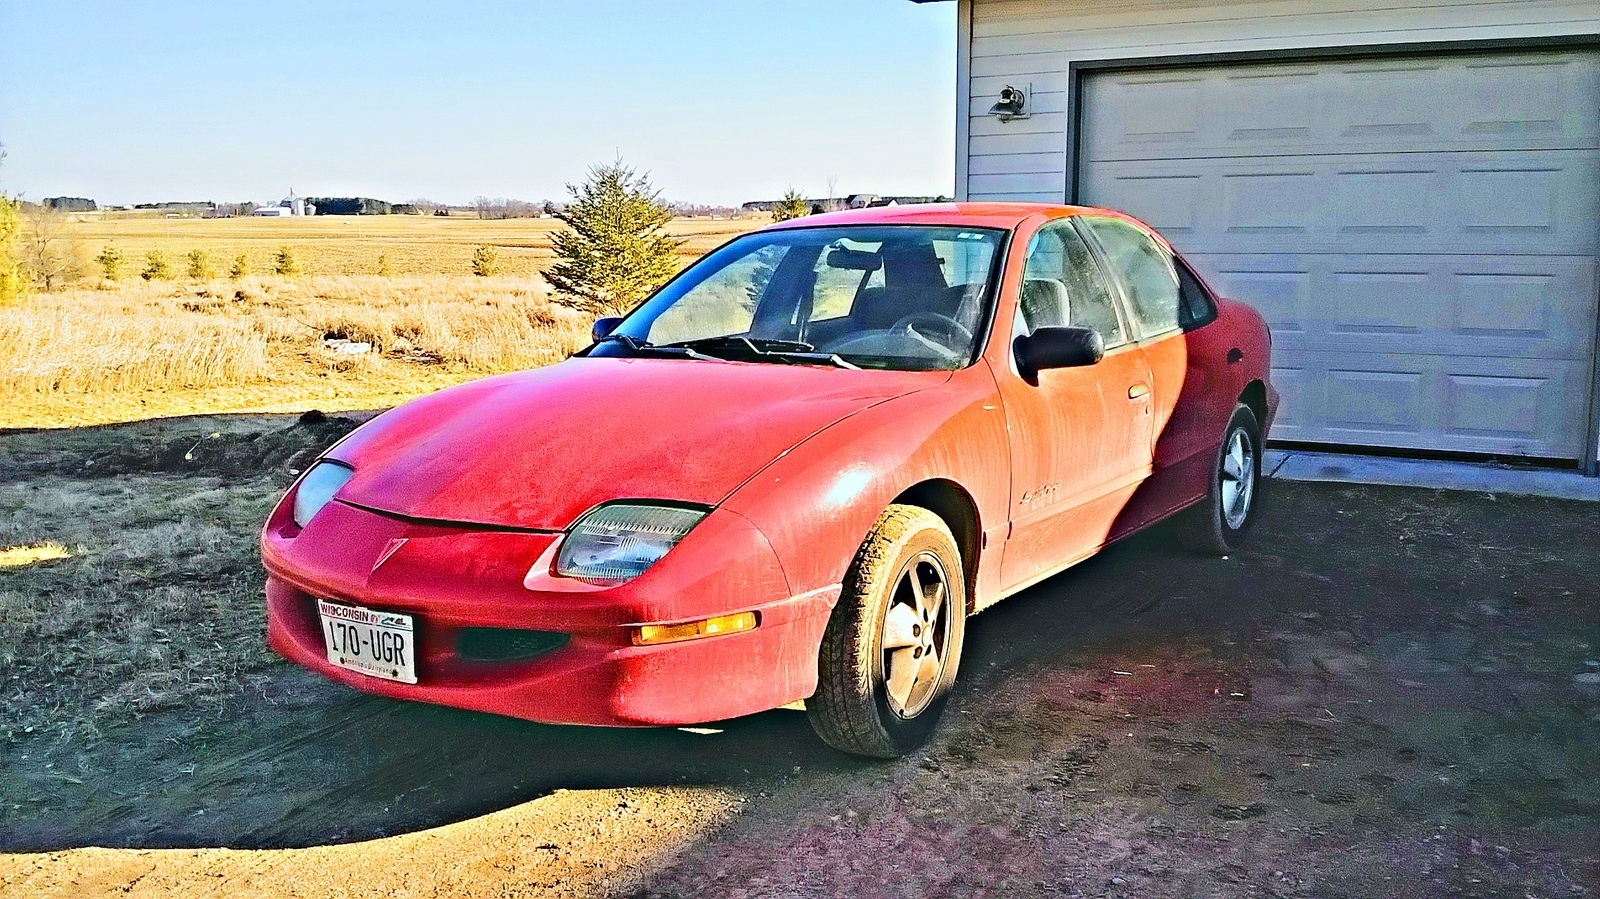 Pontiac Sunfire Questions I Have A 1998 Pontiac Sunfire And My Question Is What Kind Of Modifica Cargurus